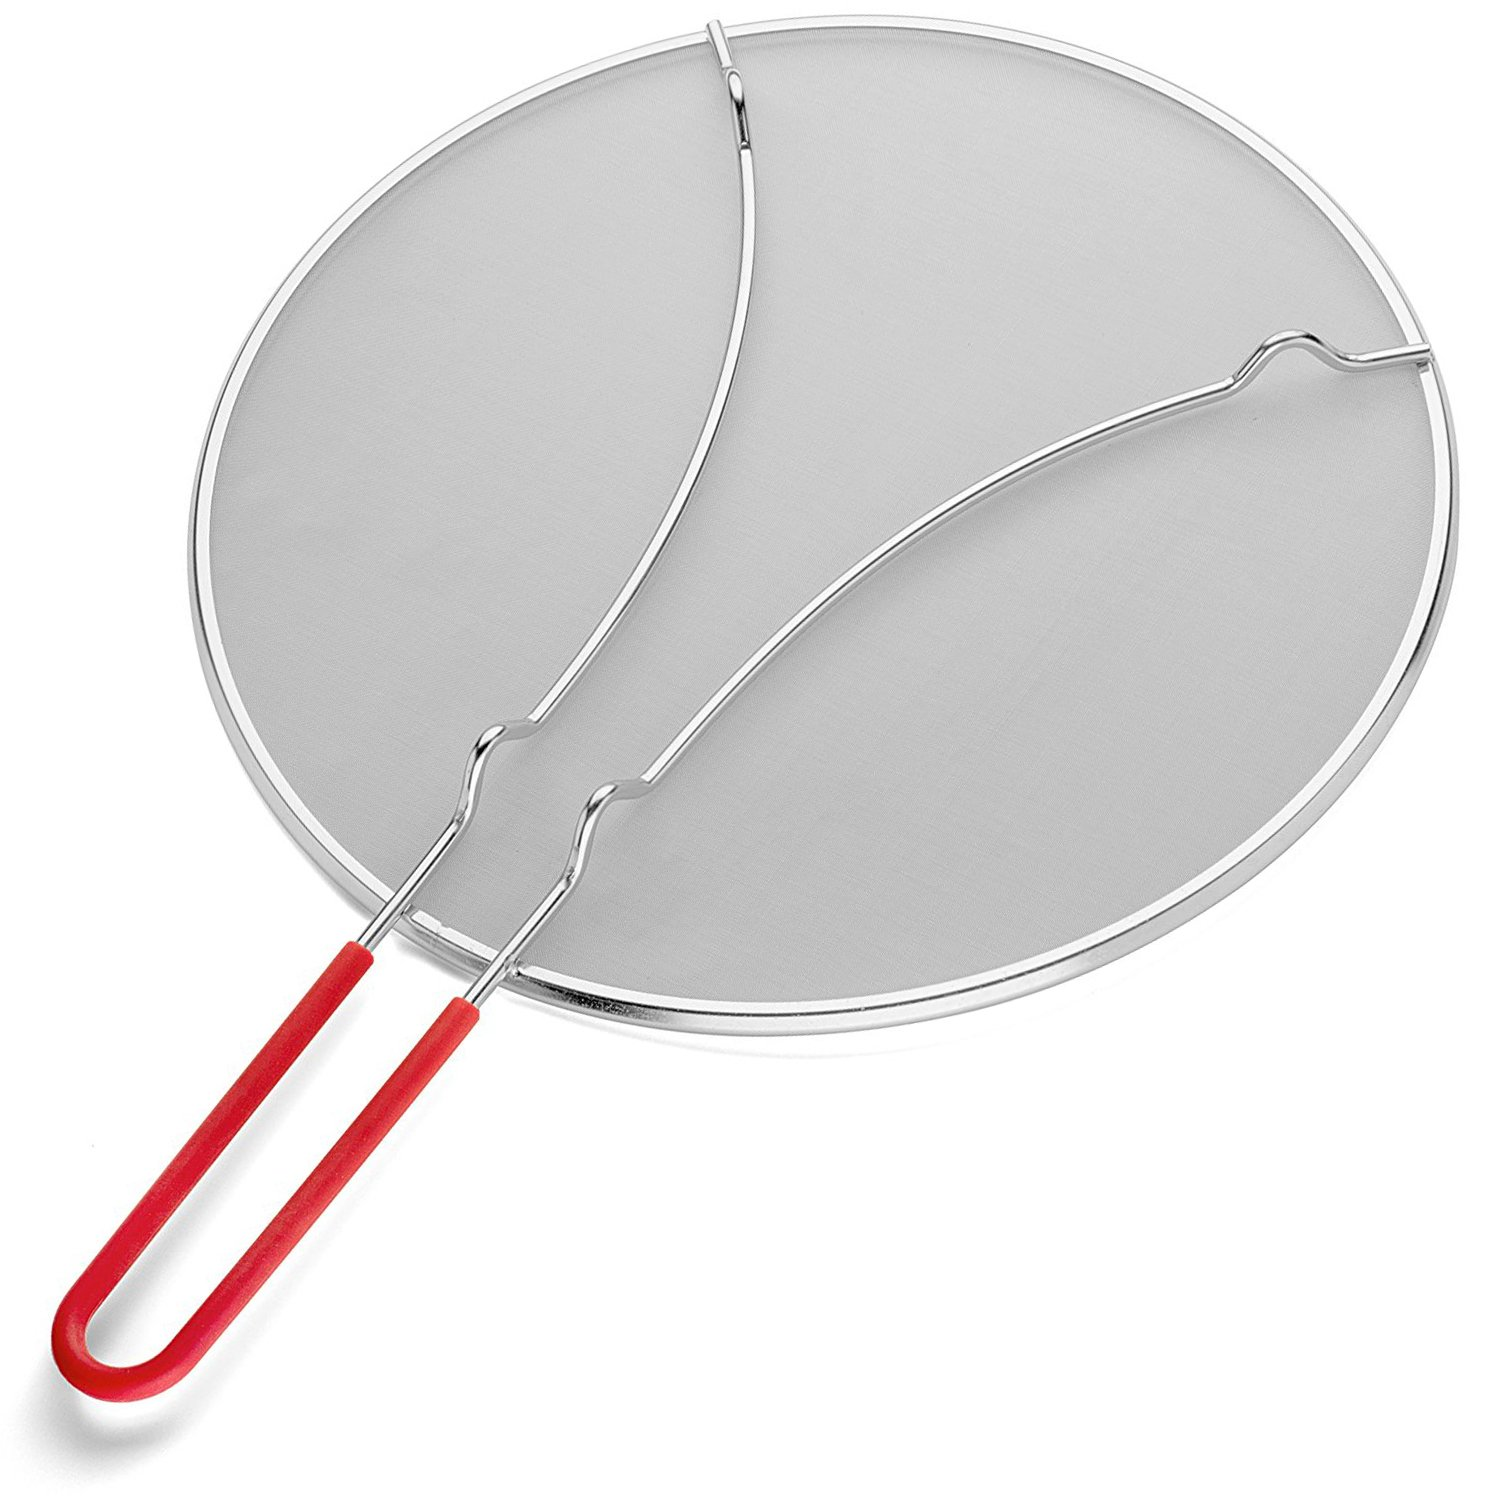 K BASIX Splatter Screen for Cooking 13'' - Silicone Handle - Stops Hot Oil Splash - Protects Skin from Burns - Grease Guard for Frying Pan Keeps Your Kitchen Clean - Heavy Duty Ultra Fine Mesh by K BASIX